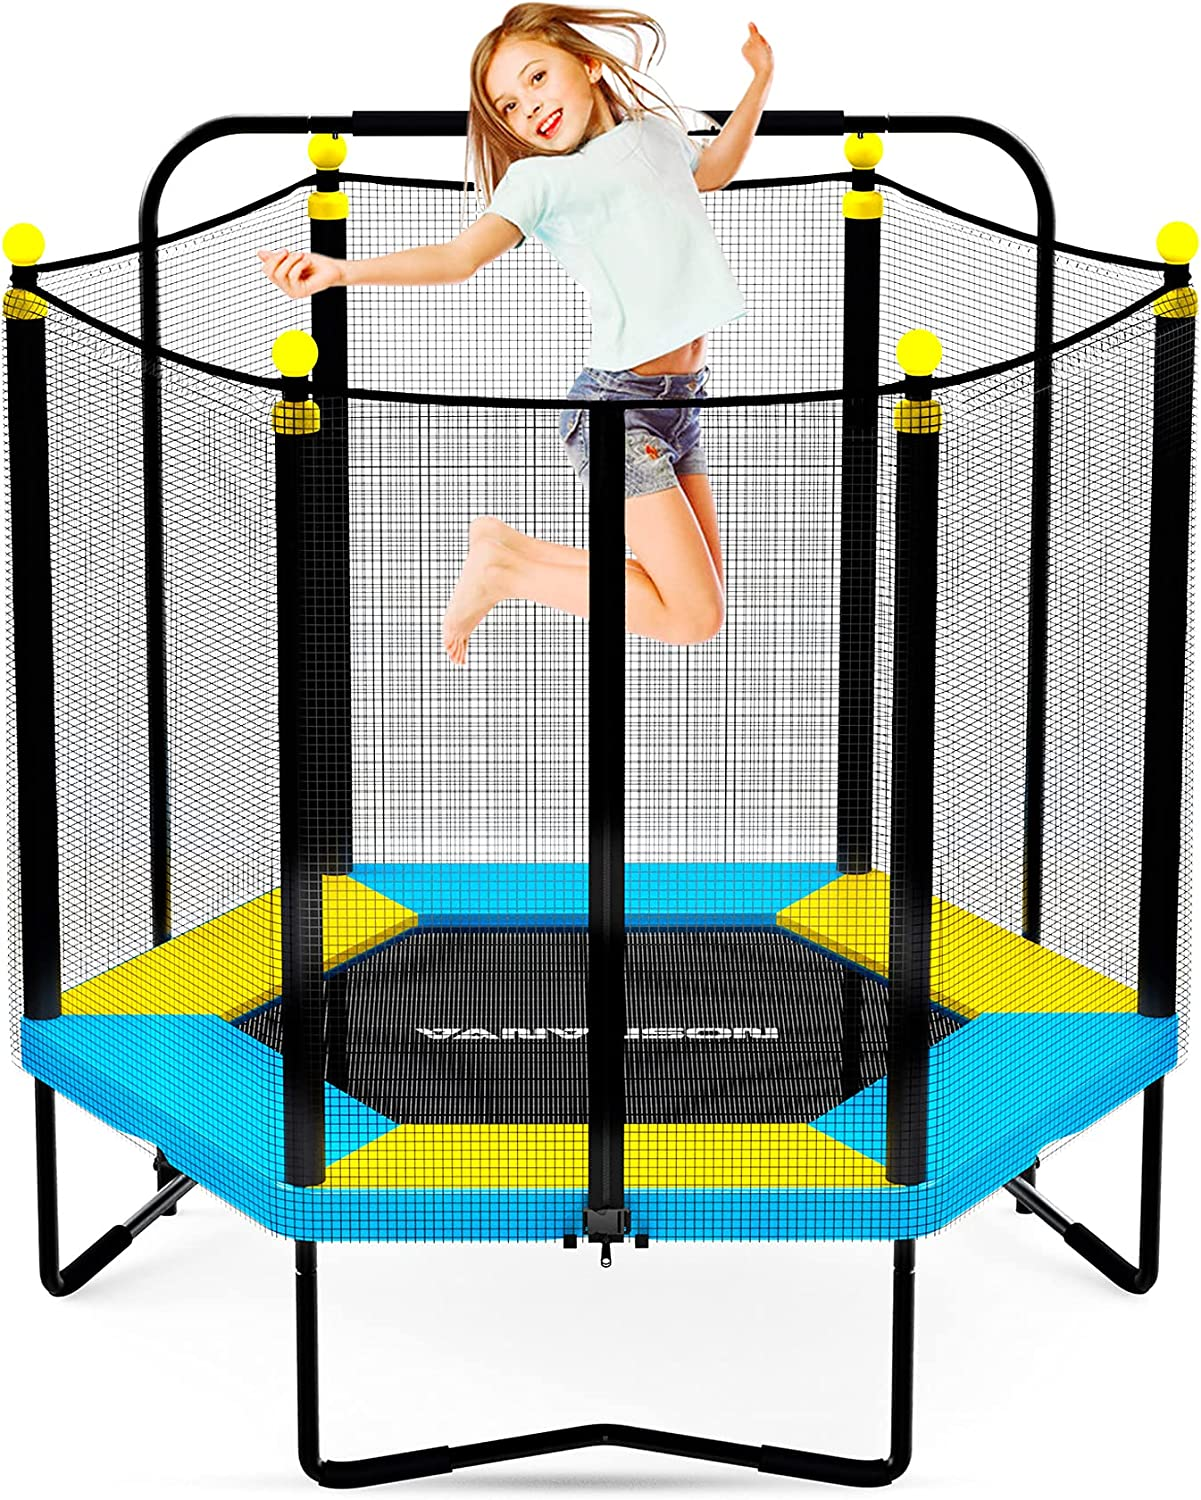 VANVUSON All items free shipping 4.5FT Kids Trampoline for Indoor Mini Toddler Outdoor Sales results No. 1